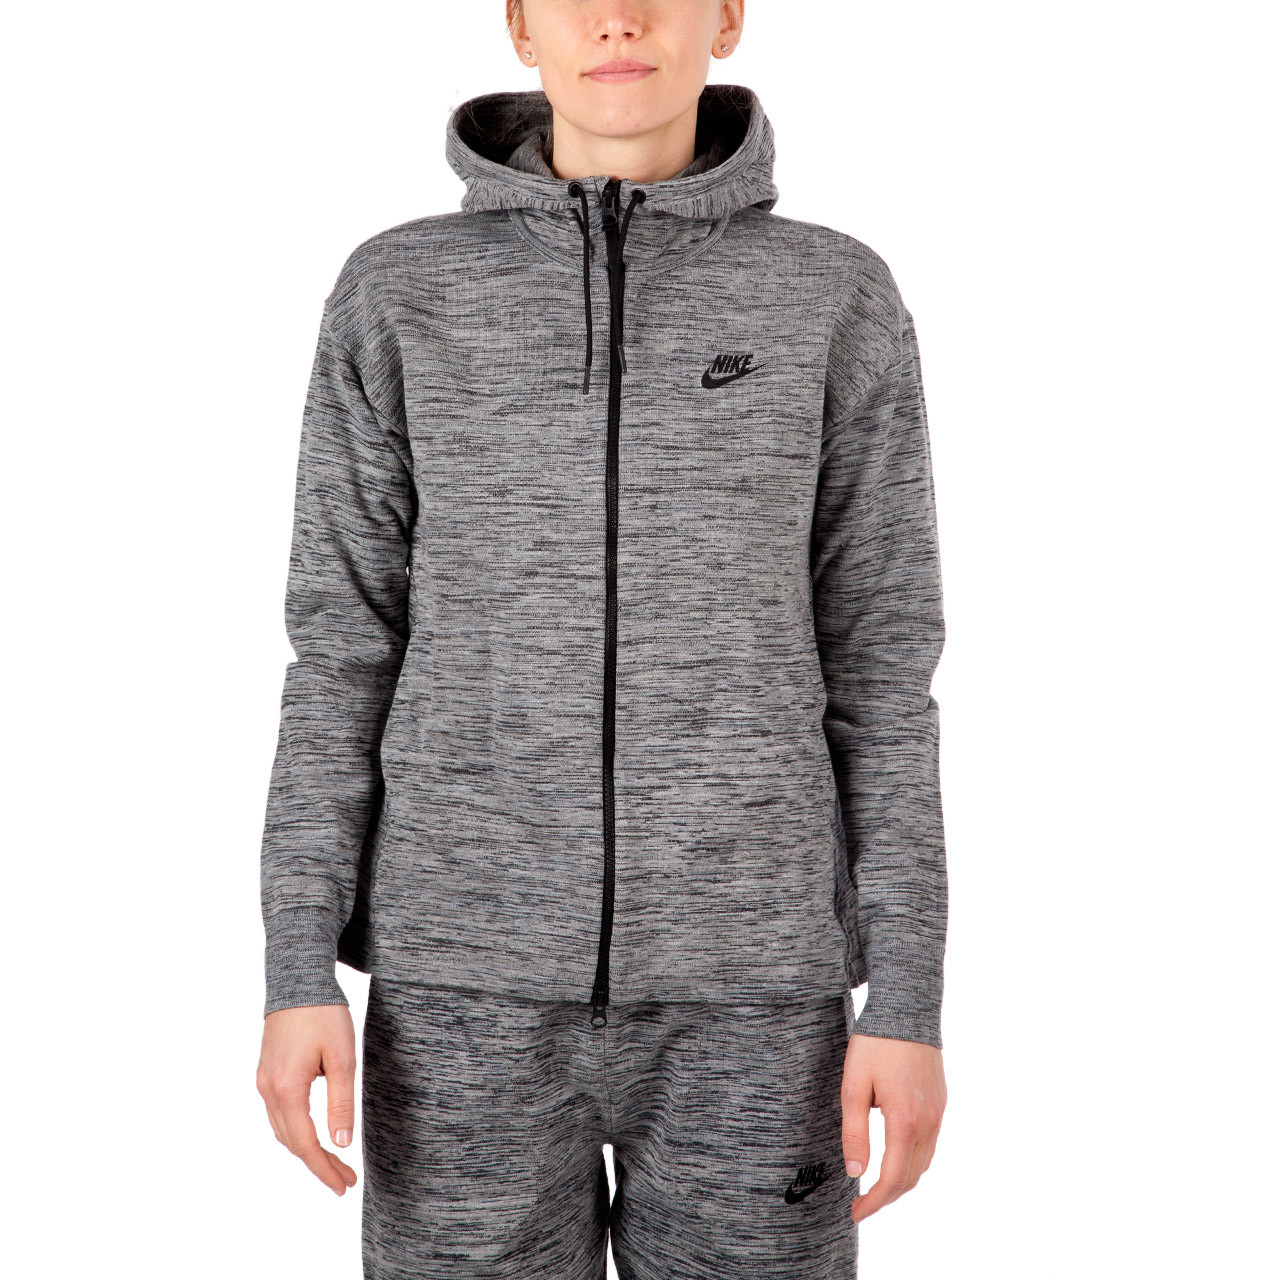 Nike Hoodie Carbon Heather Nike Wmns Tech Knit Jacket Hd Carbon Heather